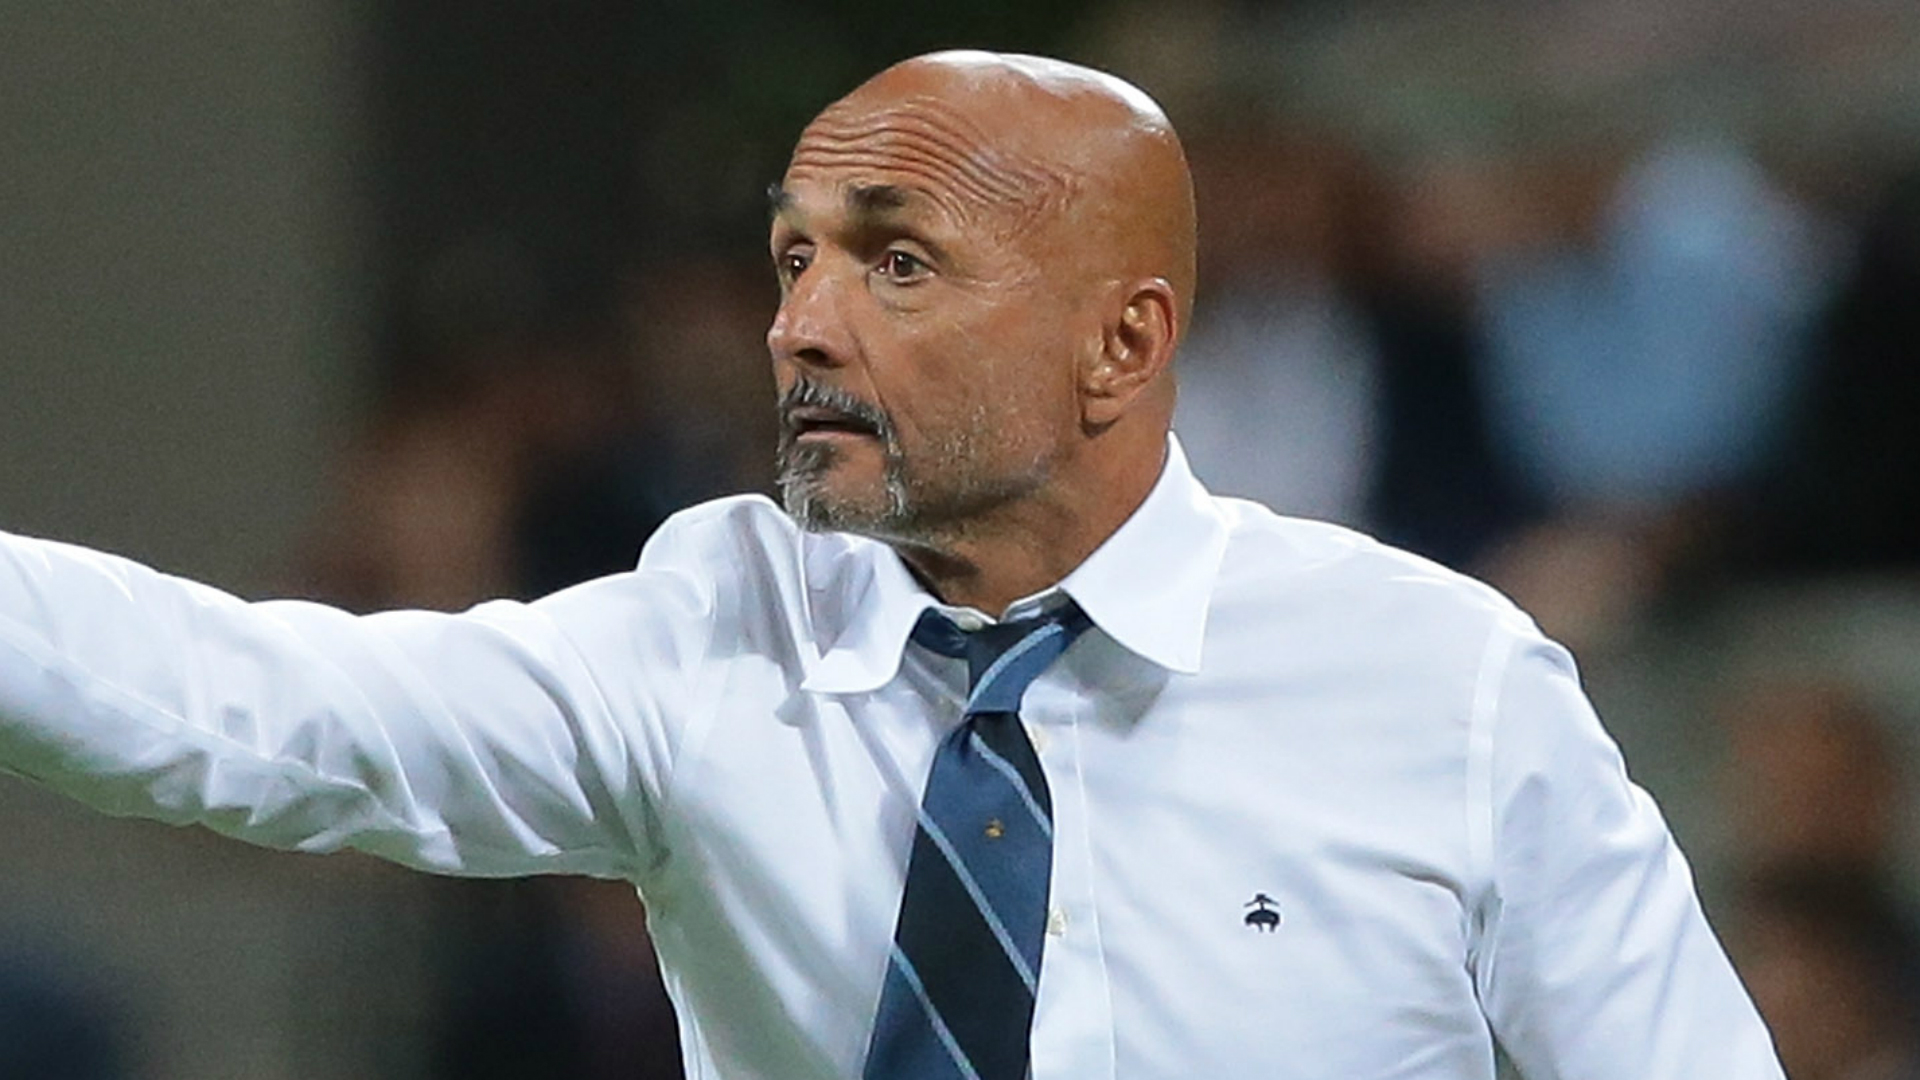 Inter 2 Torino 2: Spalletti's side drop points again after visitors' fightback